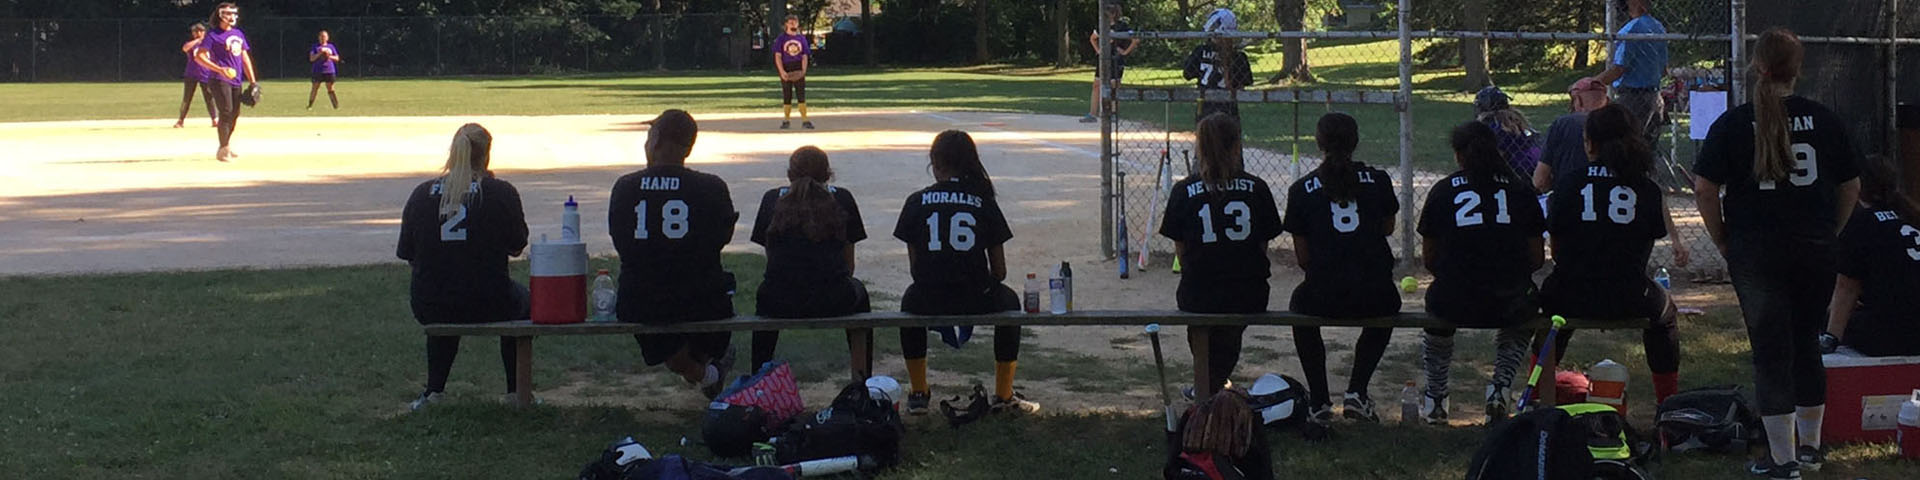 Girls in softball uniforms sitting on a bench.